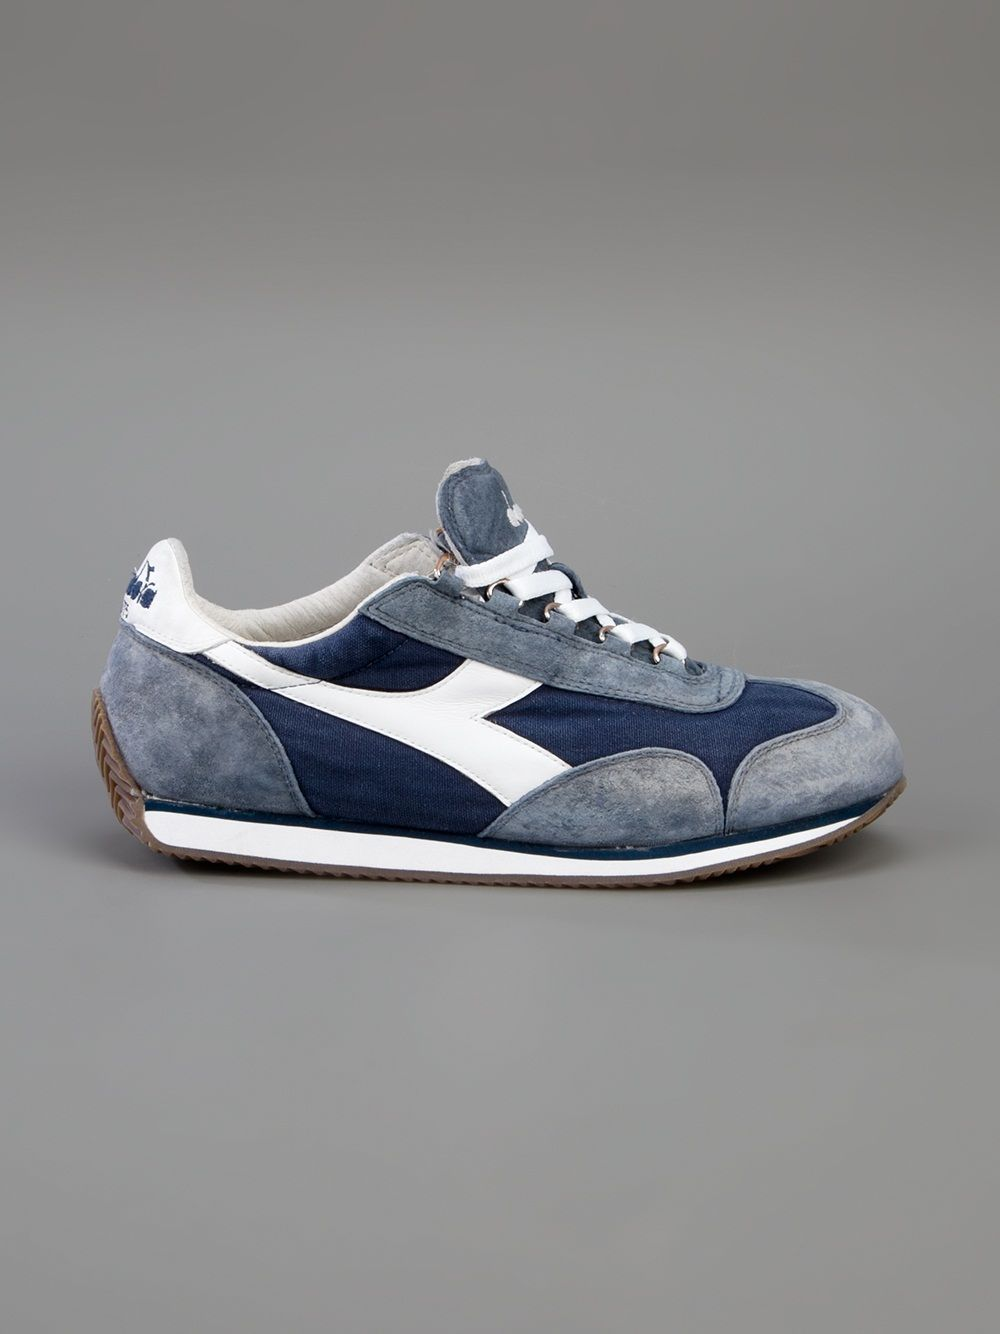 sports shoes 3c1b8 b520d Diadora sneakers made in Italy | Stuff I like | Sneakers ...